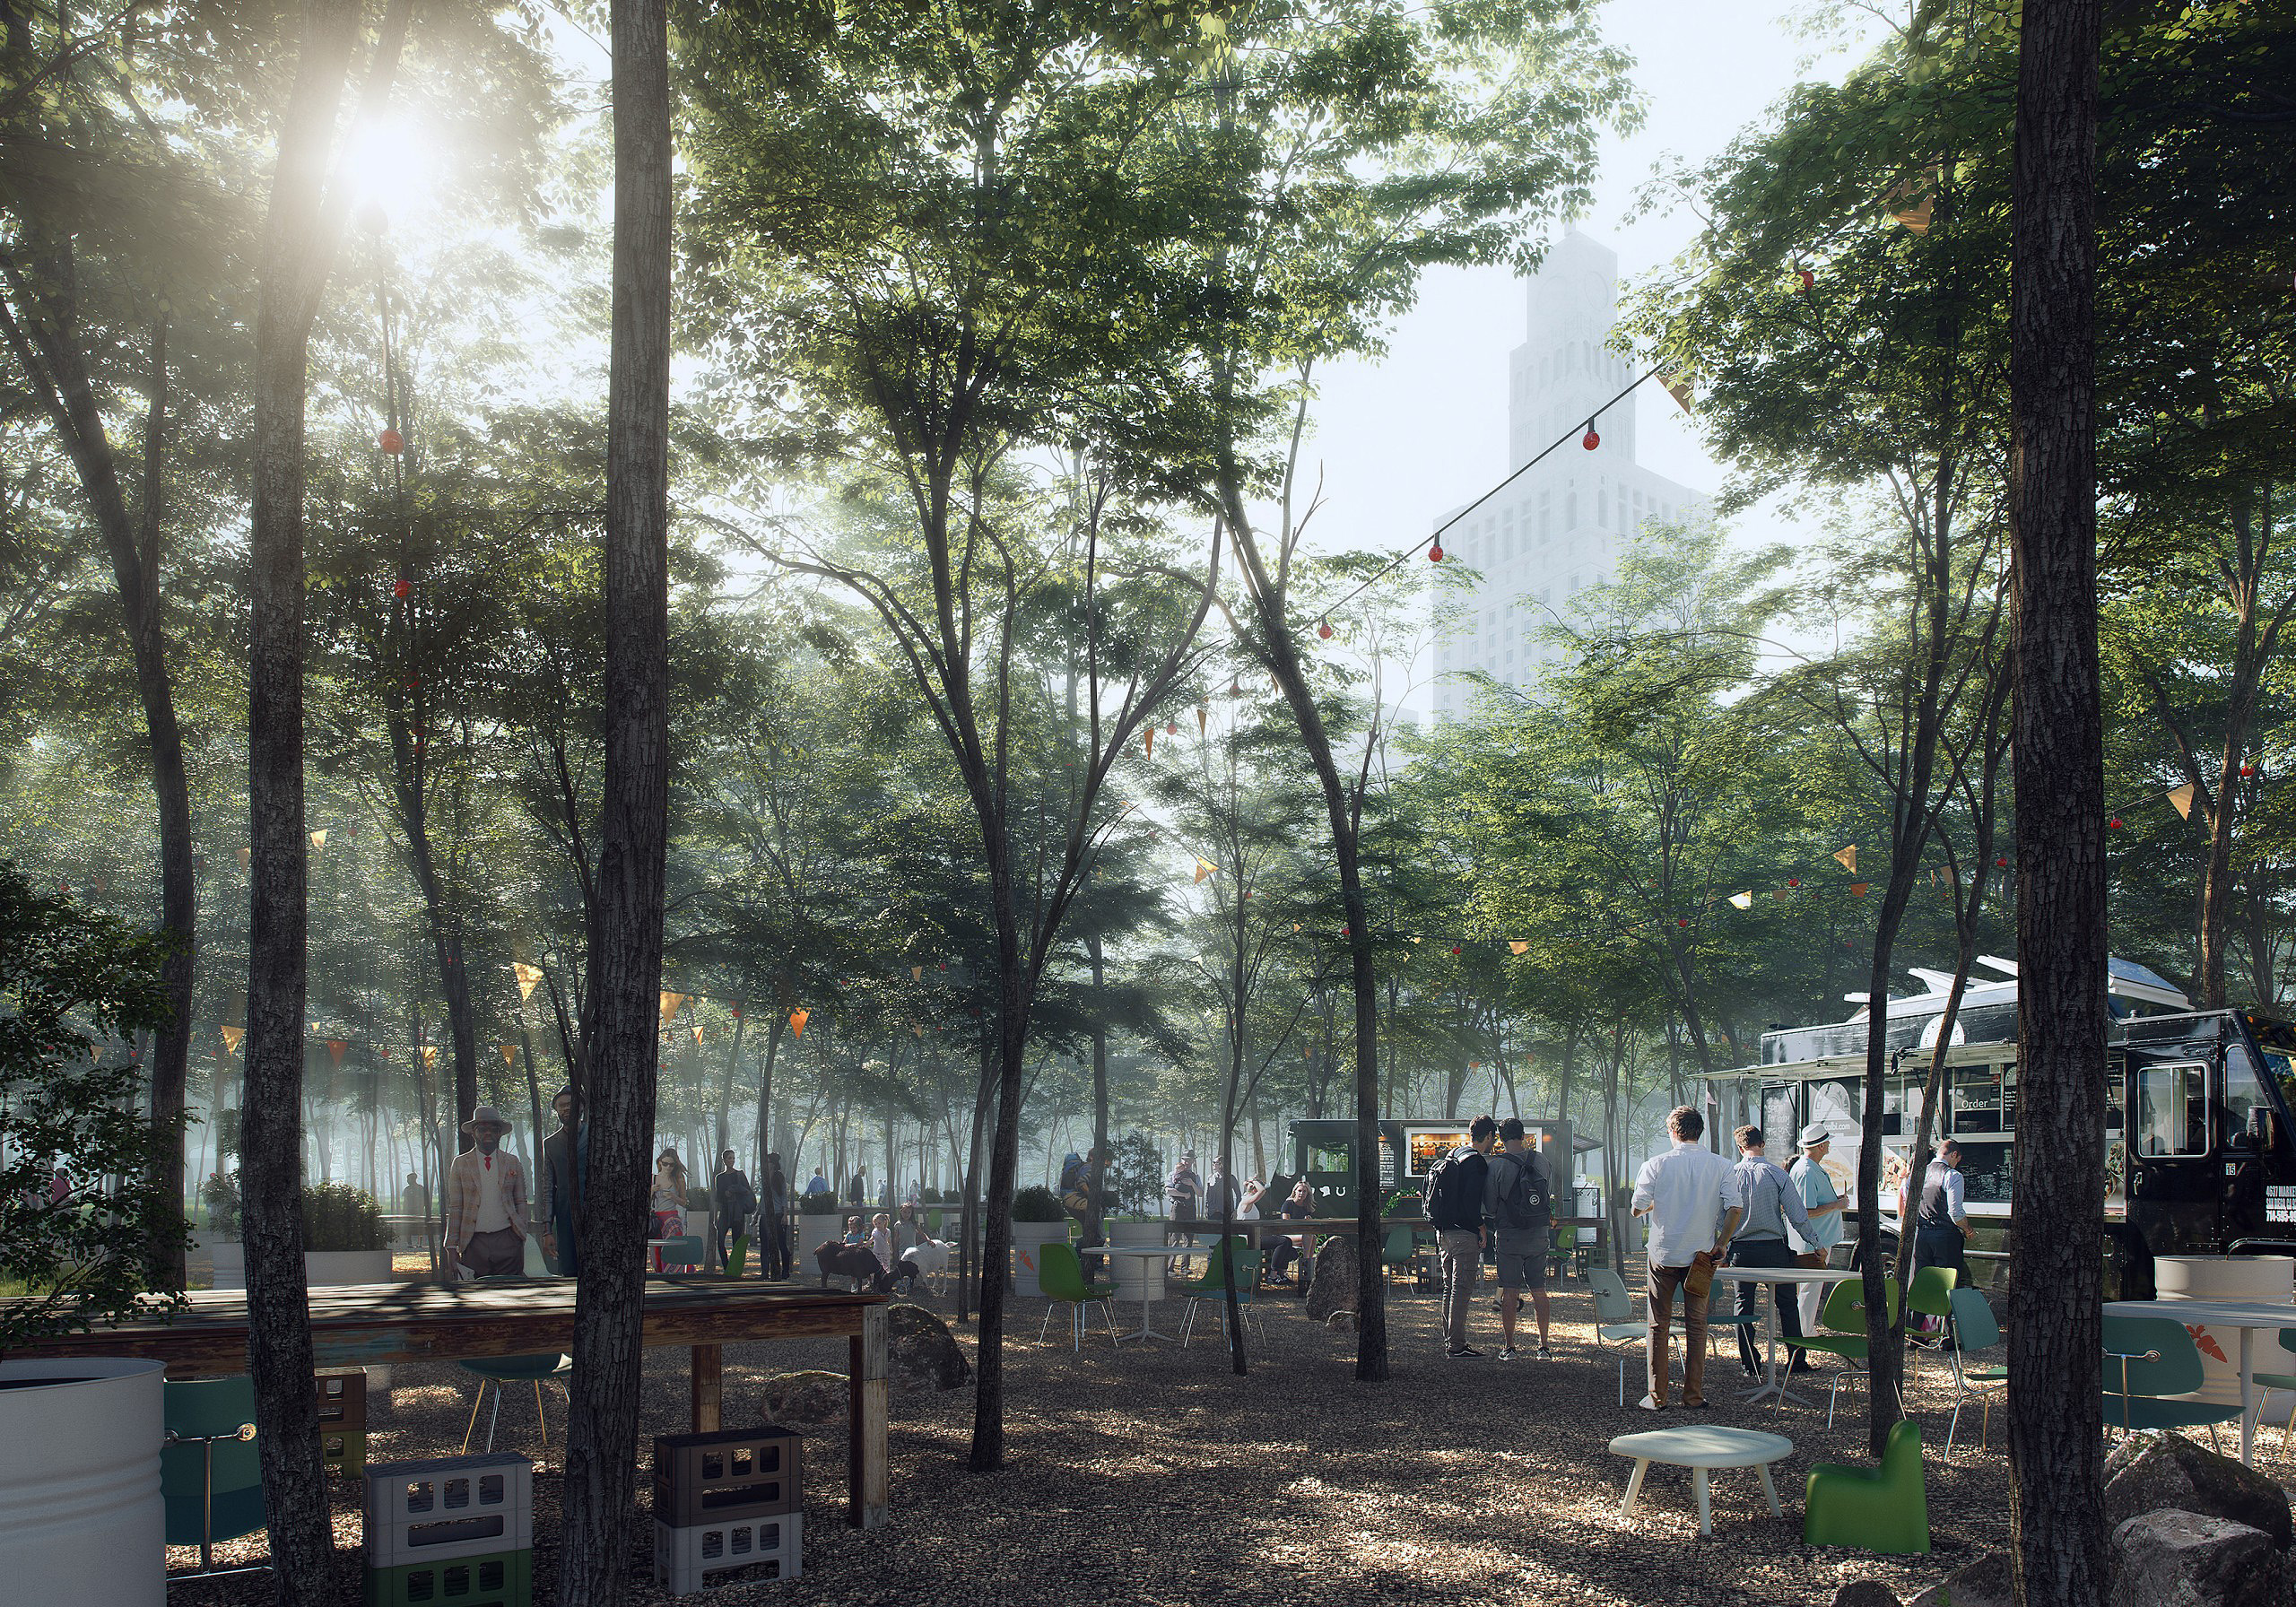 Vivid landscape visualisation: light coming through dense trees iluminating a lively food truck court